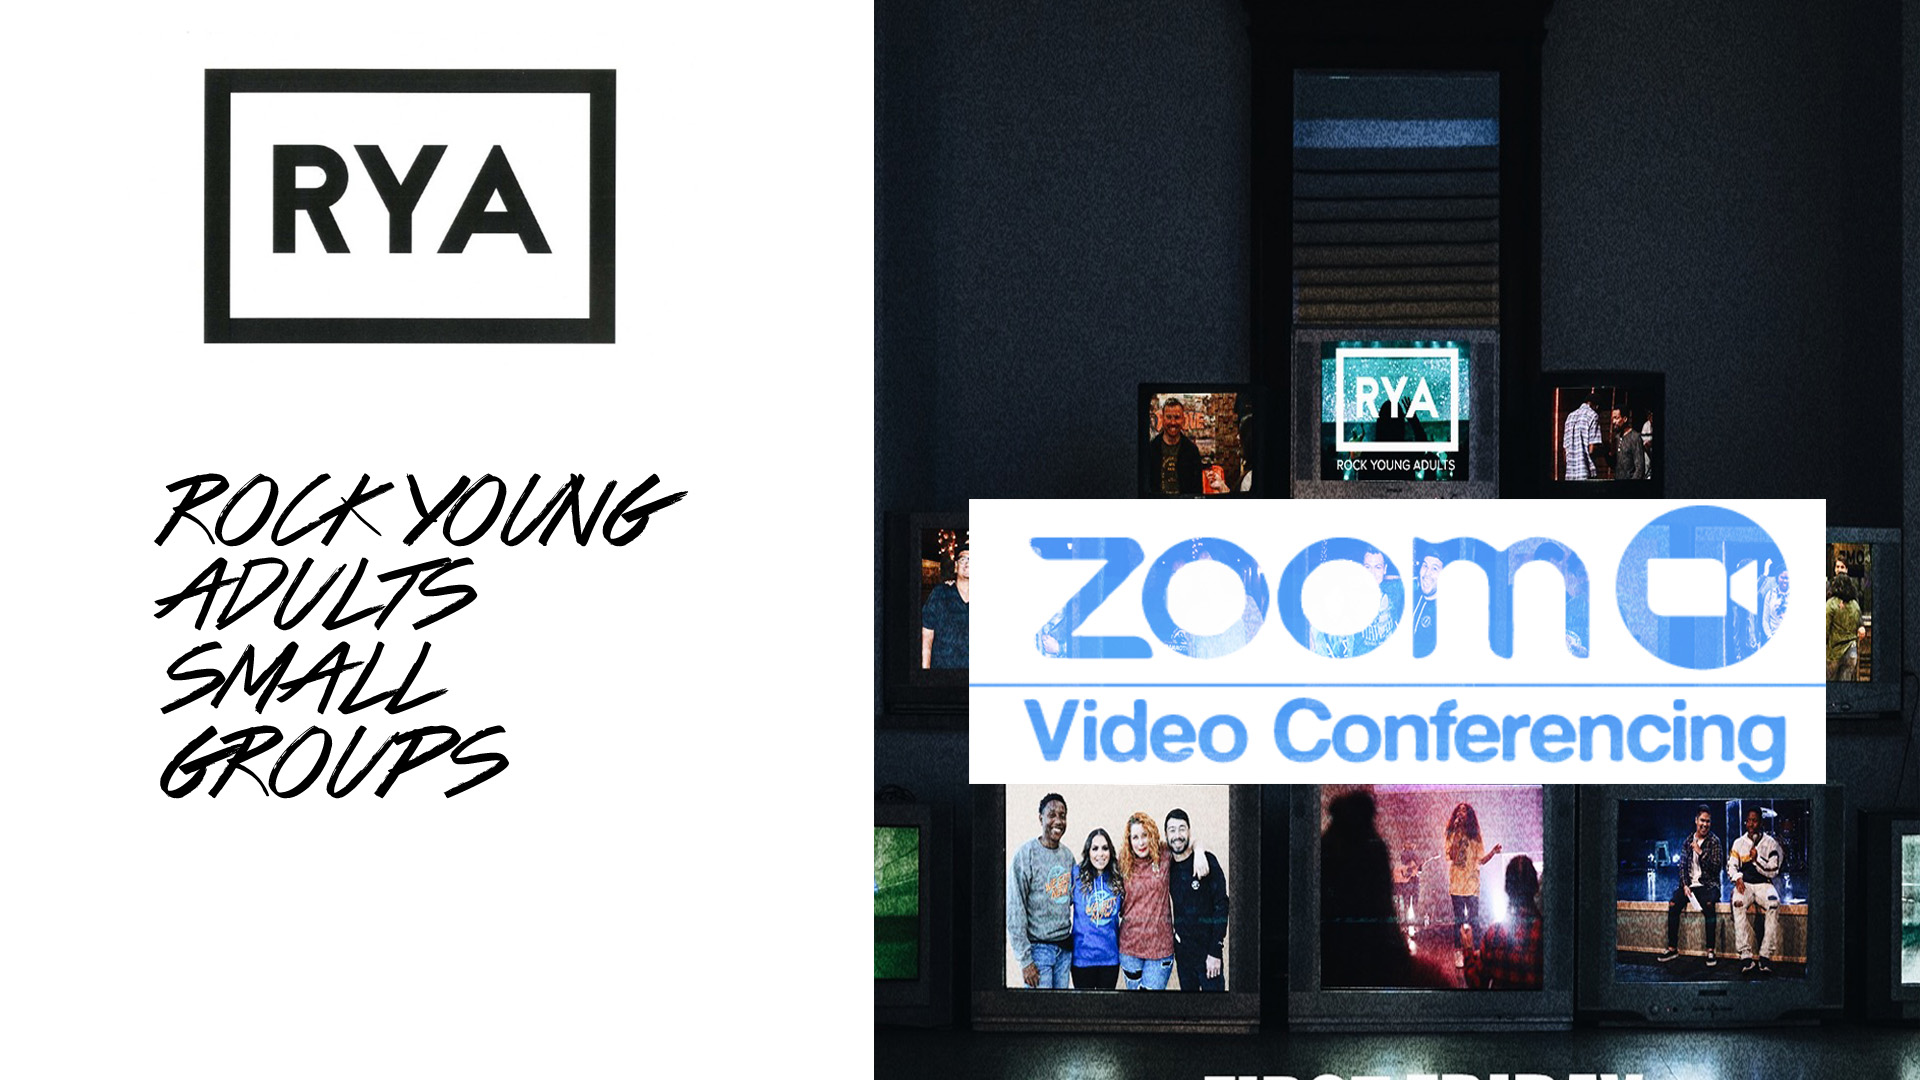 Rock Young Adults Small Groups (Zoom Online)